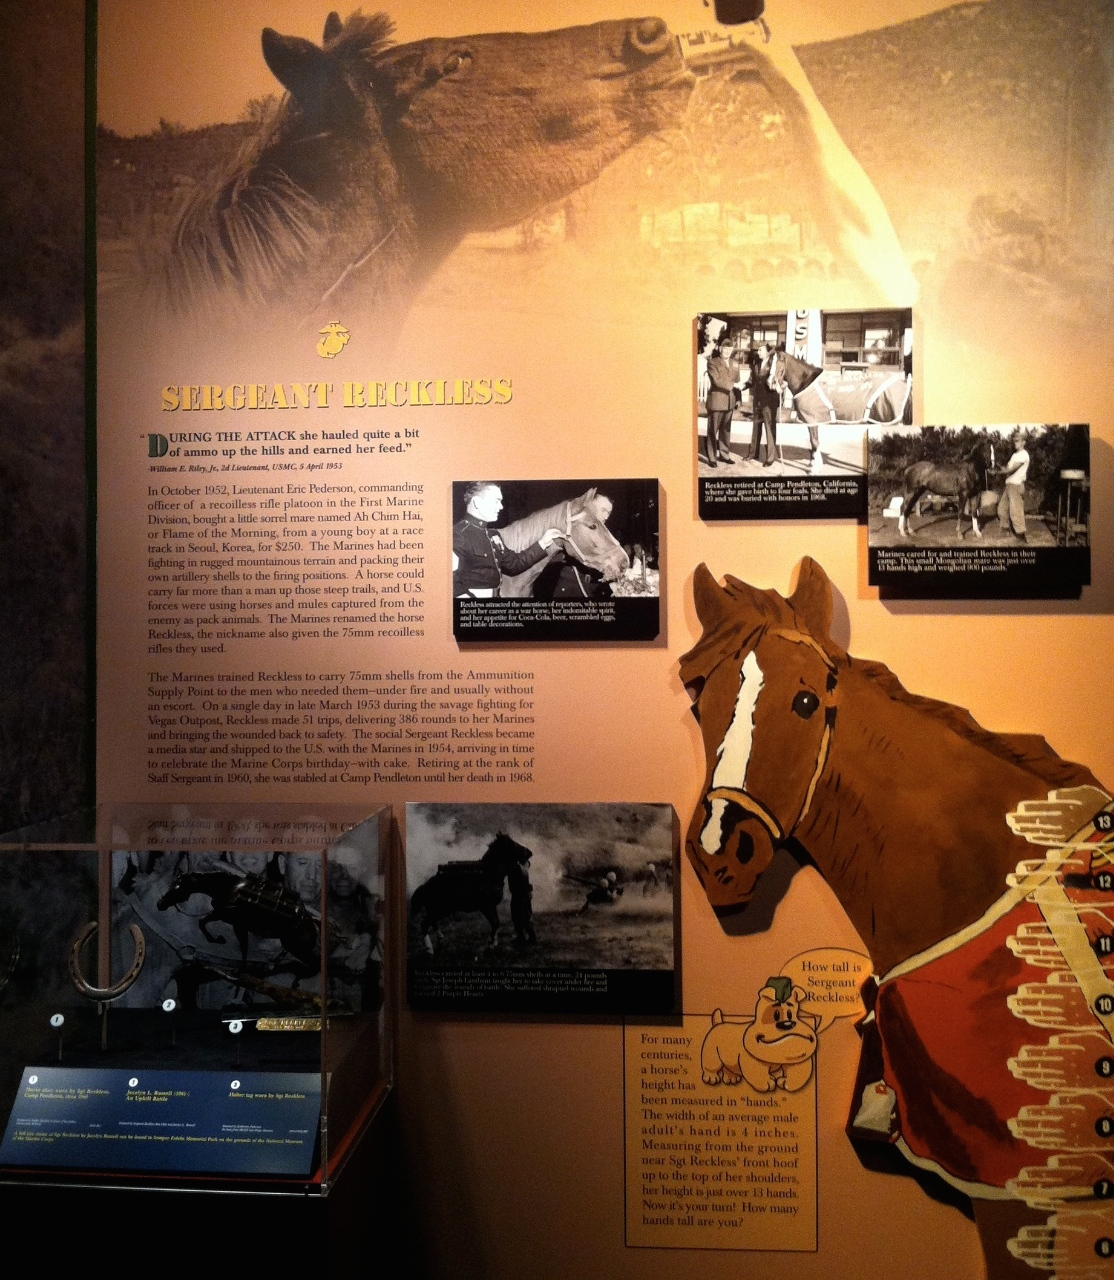 Sgt Reckless Exhibit